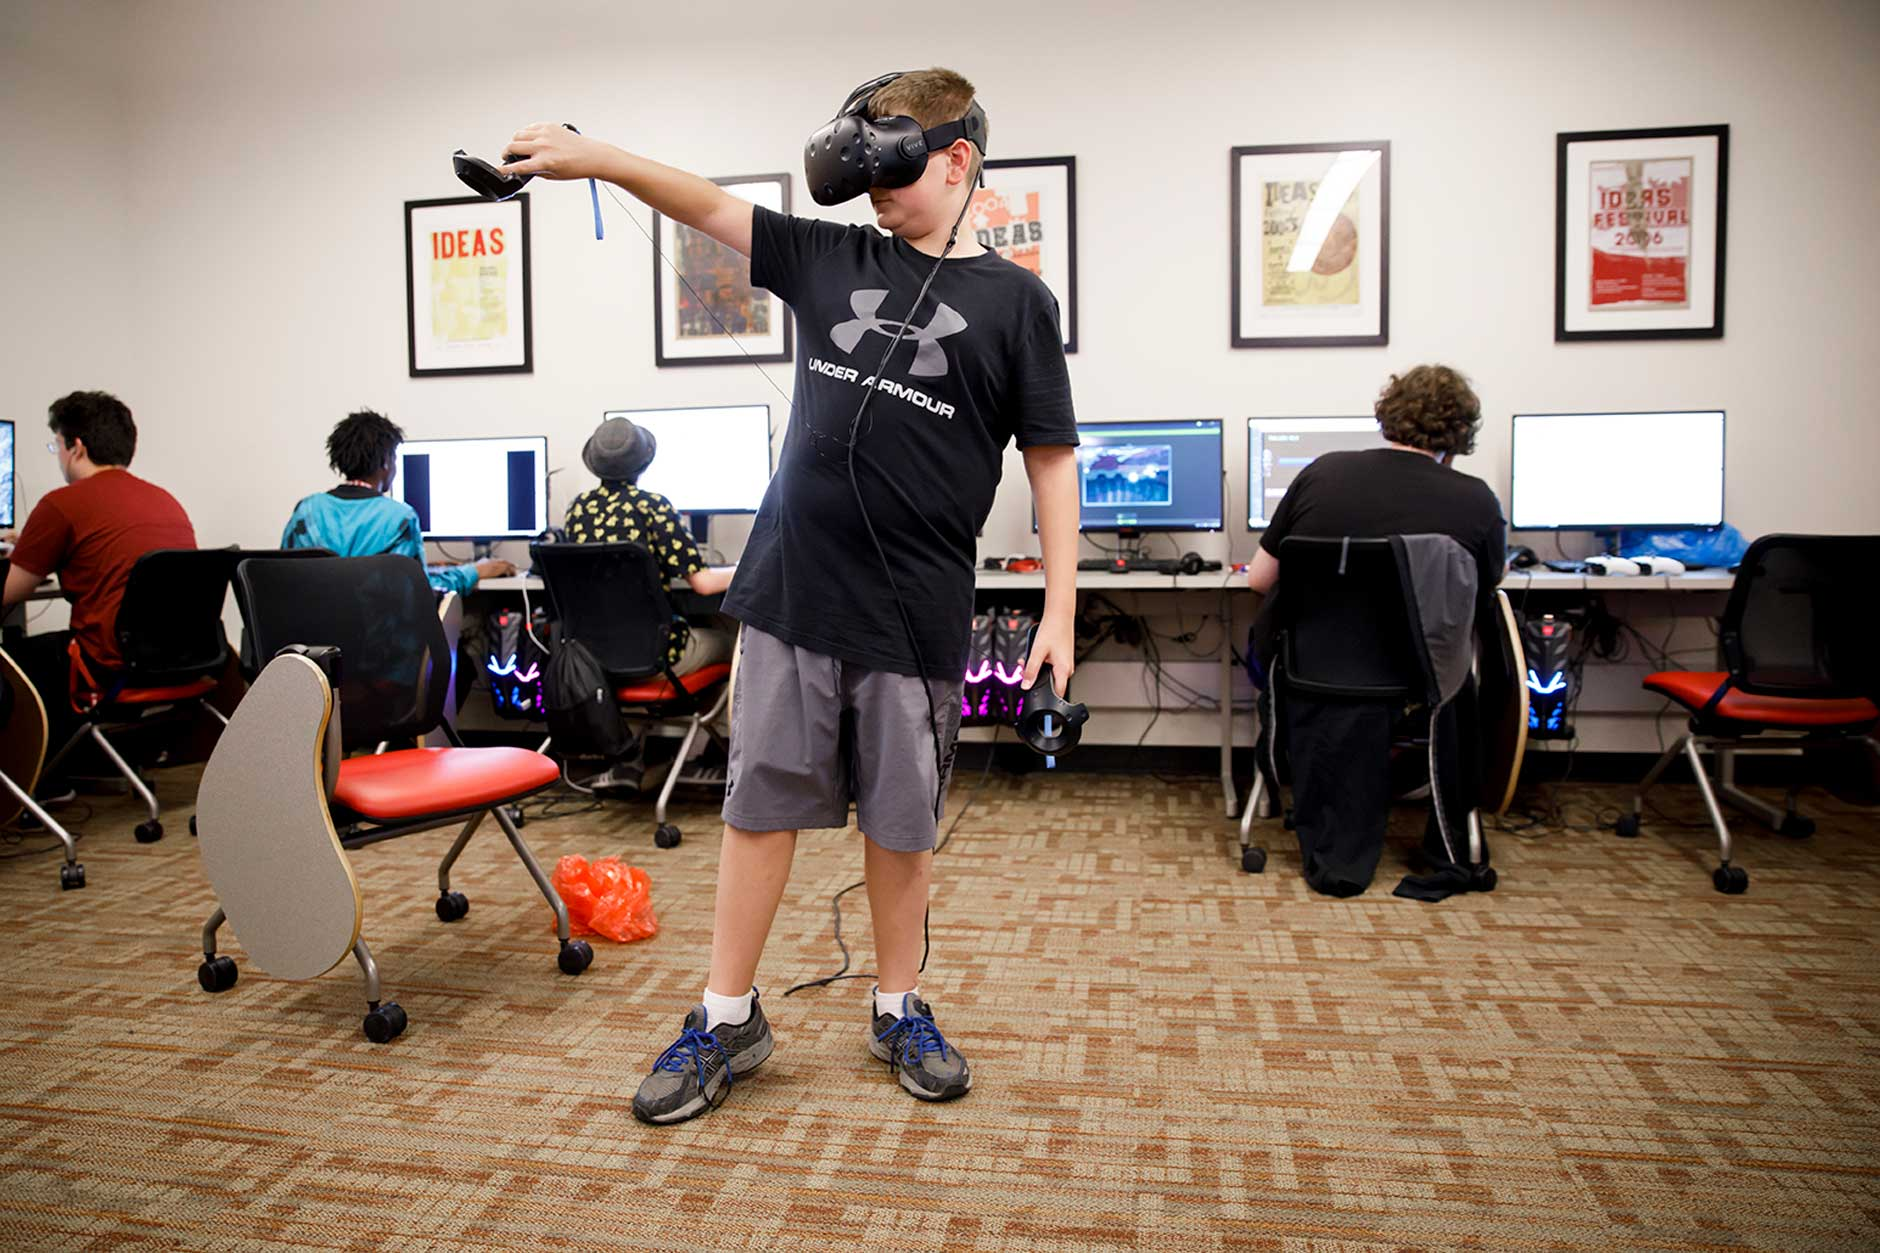 Sam Sylvester plays a game in virtual reality during the Game Development Camp at the Indiana University Media School on Thursday, June 21, 2018. (James Brosher/IU Communications)